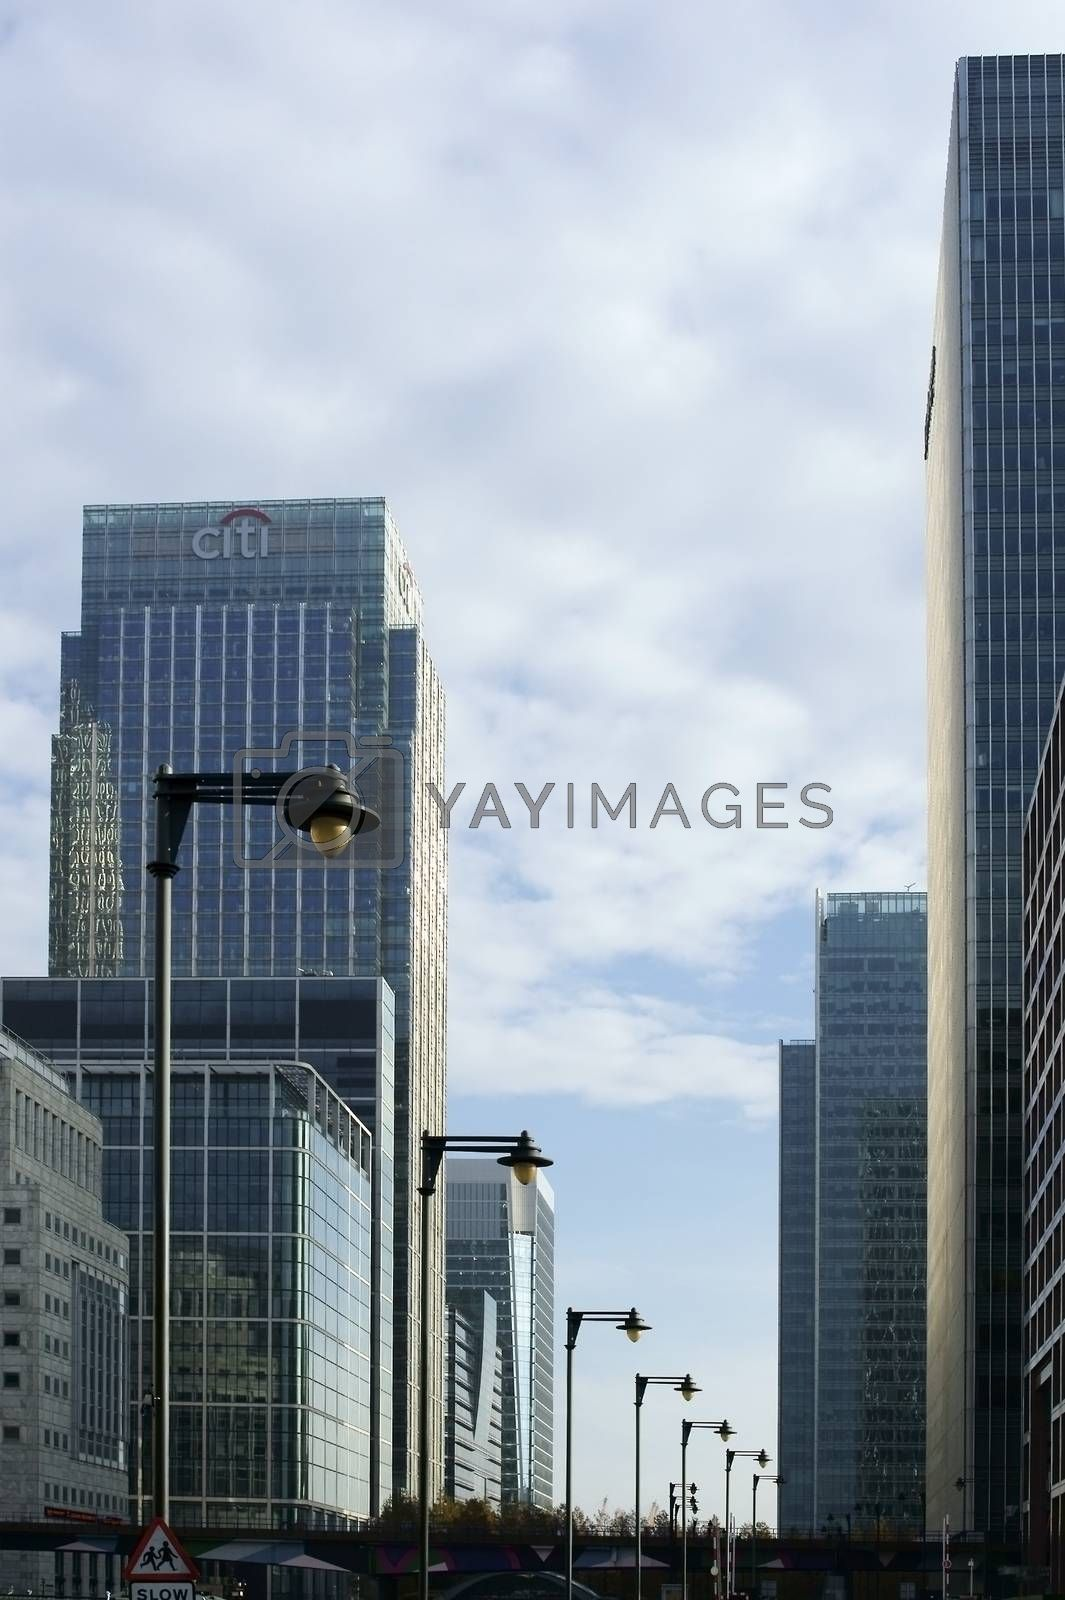 London, UK  - November 29, 2014: The modern office building of Citigroup as well as other banks and skyscrapers in the financial district Canary Wharf on November 29, 2014 in London.